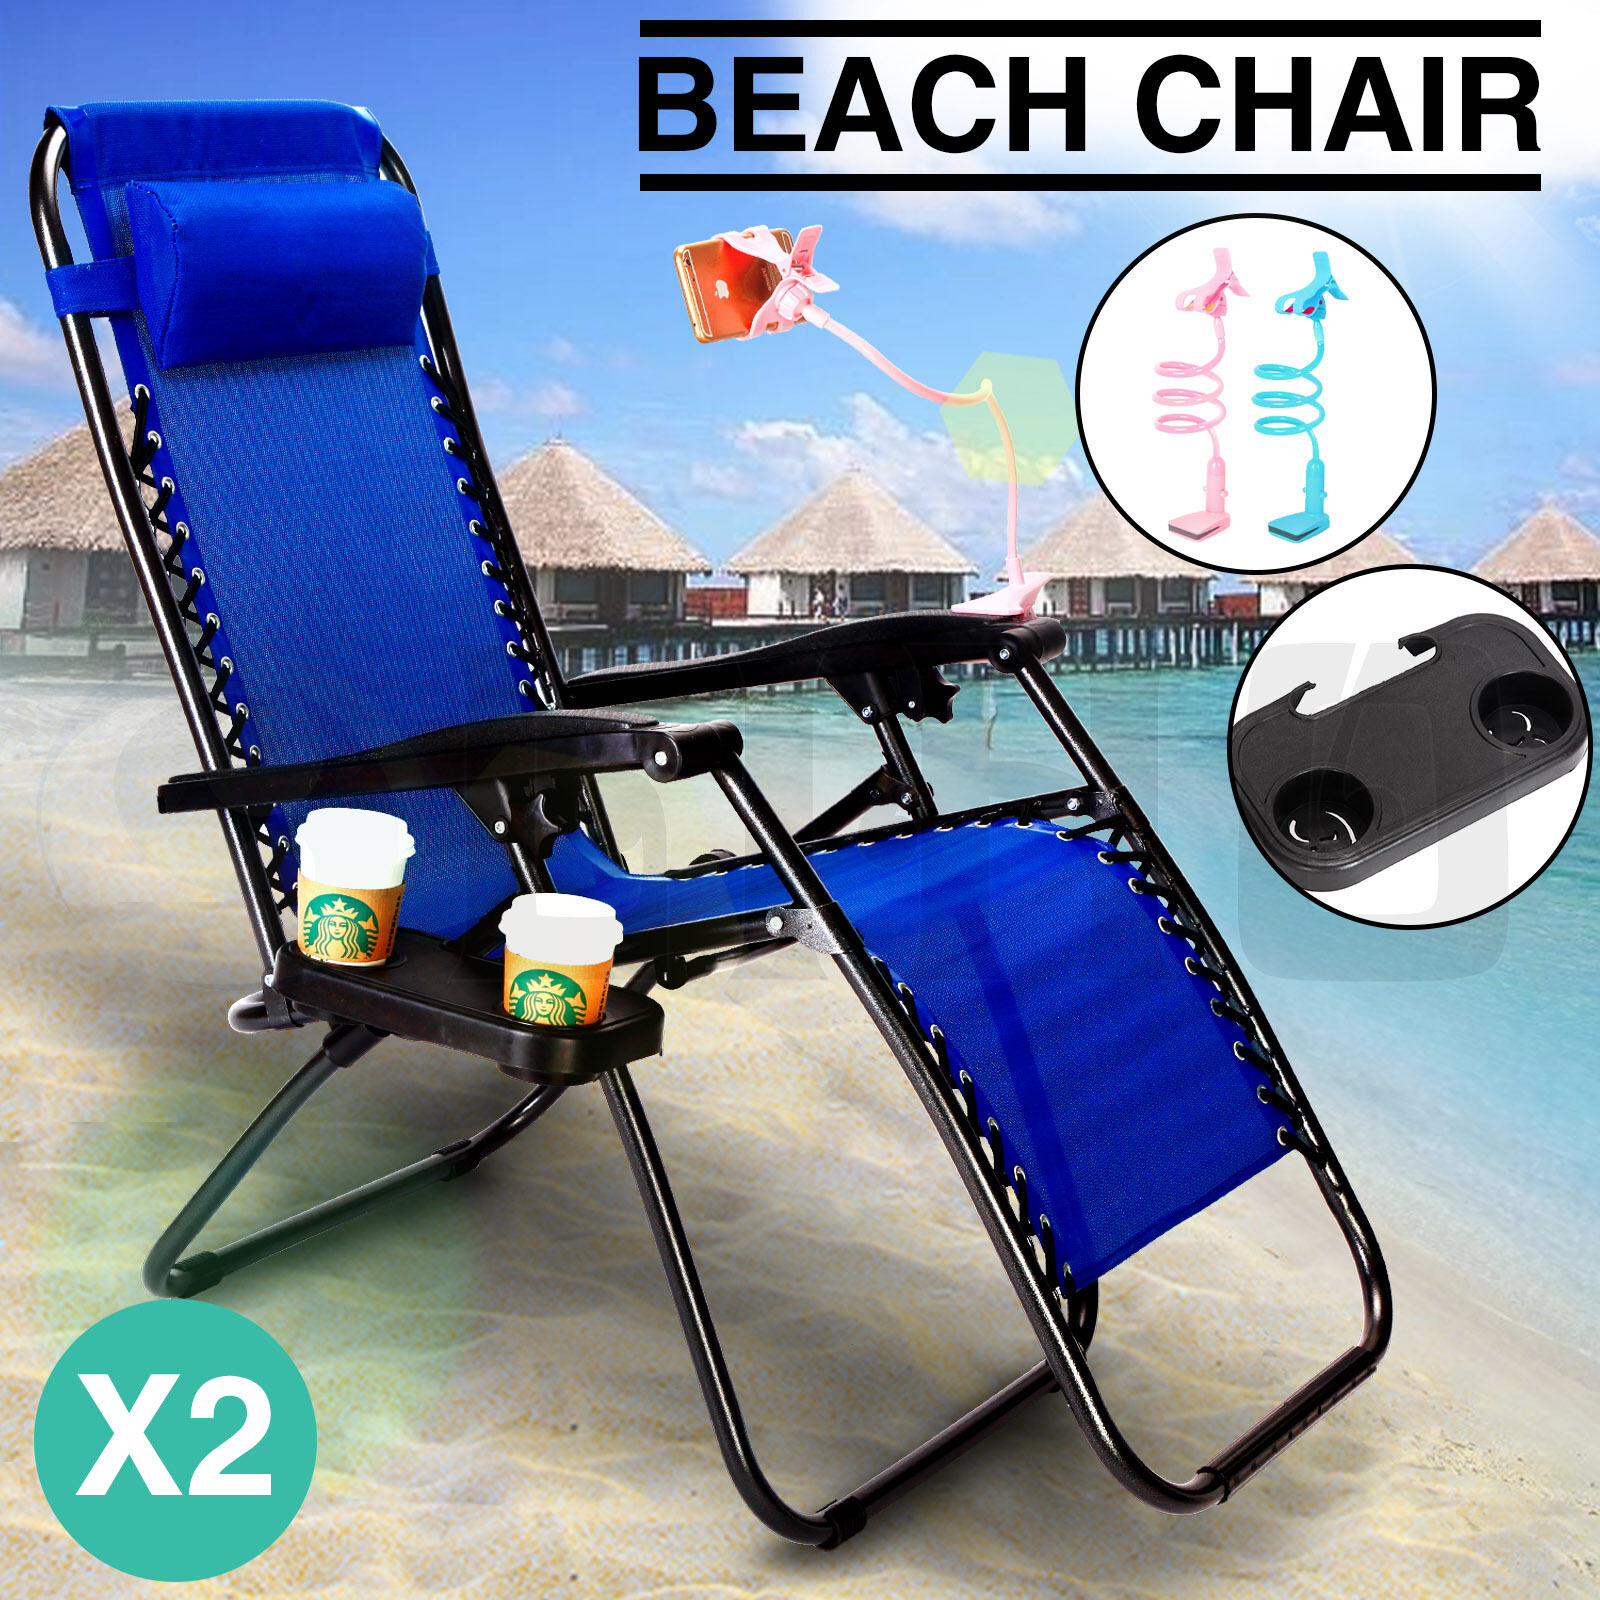 Folding Lounge Beach Chair 2 Navy Zero Gravity Lounge Beach Chair 43utility Tray